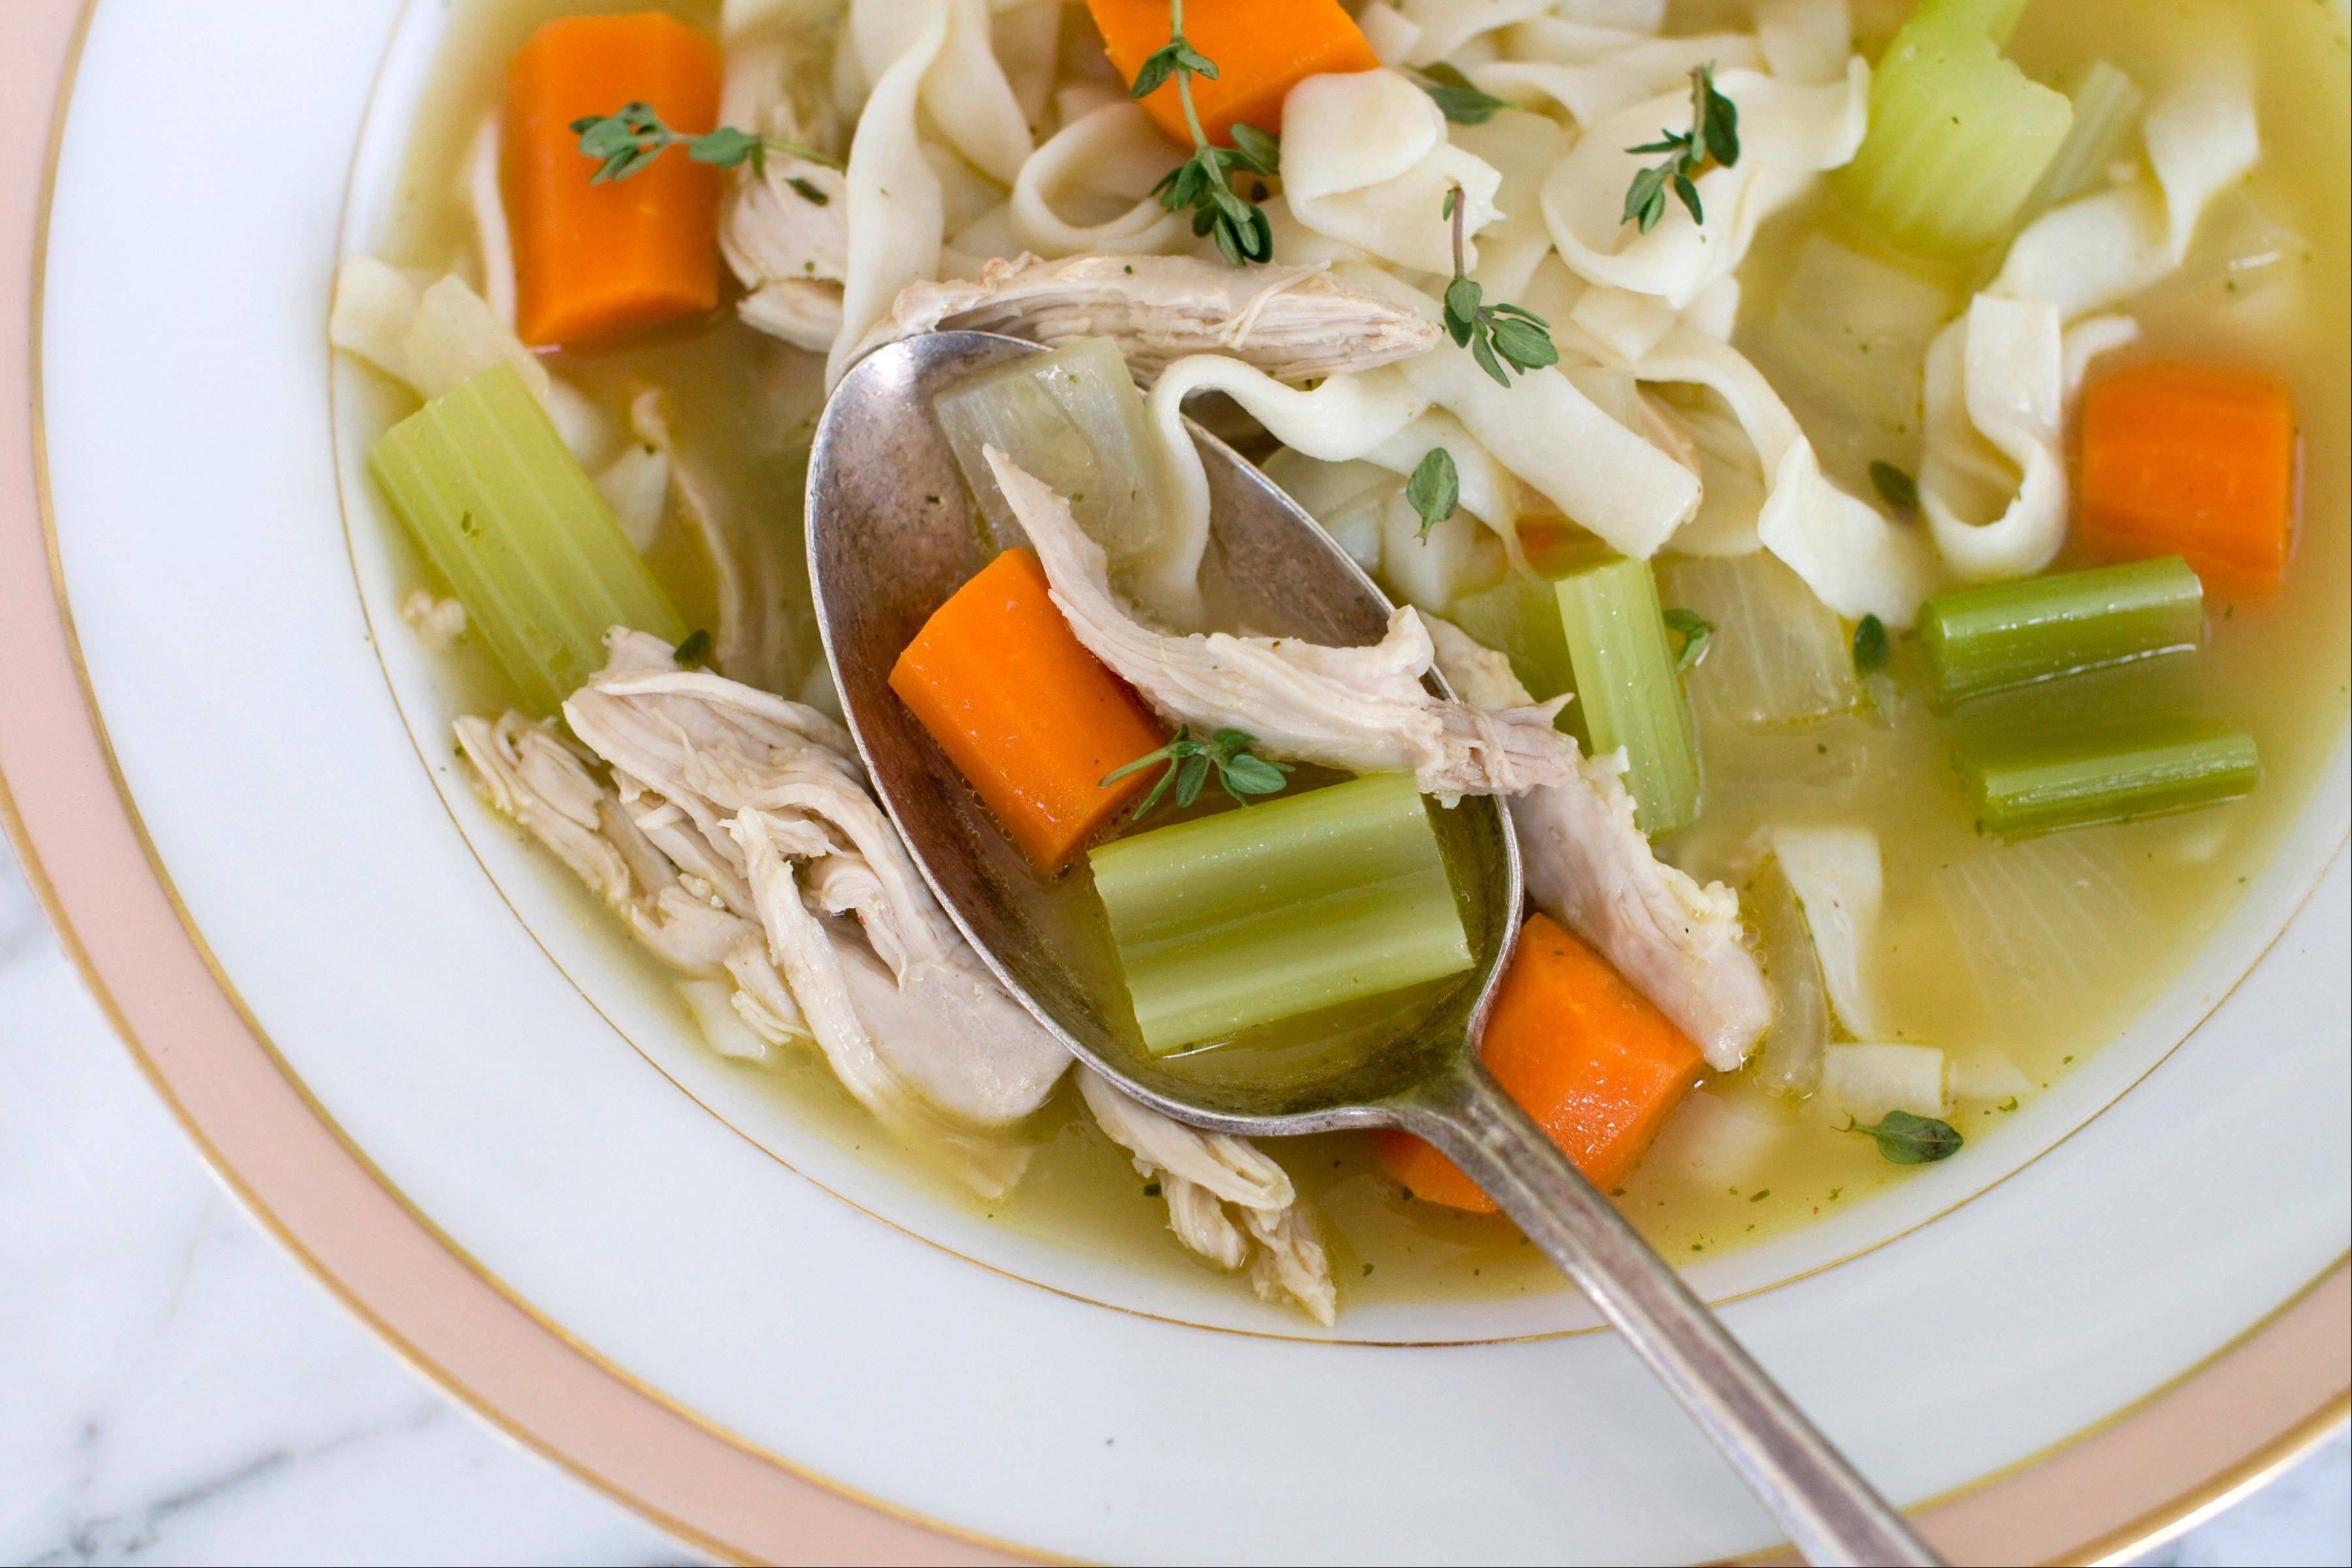 This chicken noodle soup uses real chicken and fresh vegetables, like carrots and onions, which are a great source of vitamins.